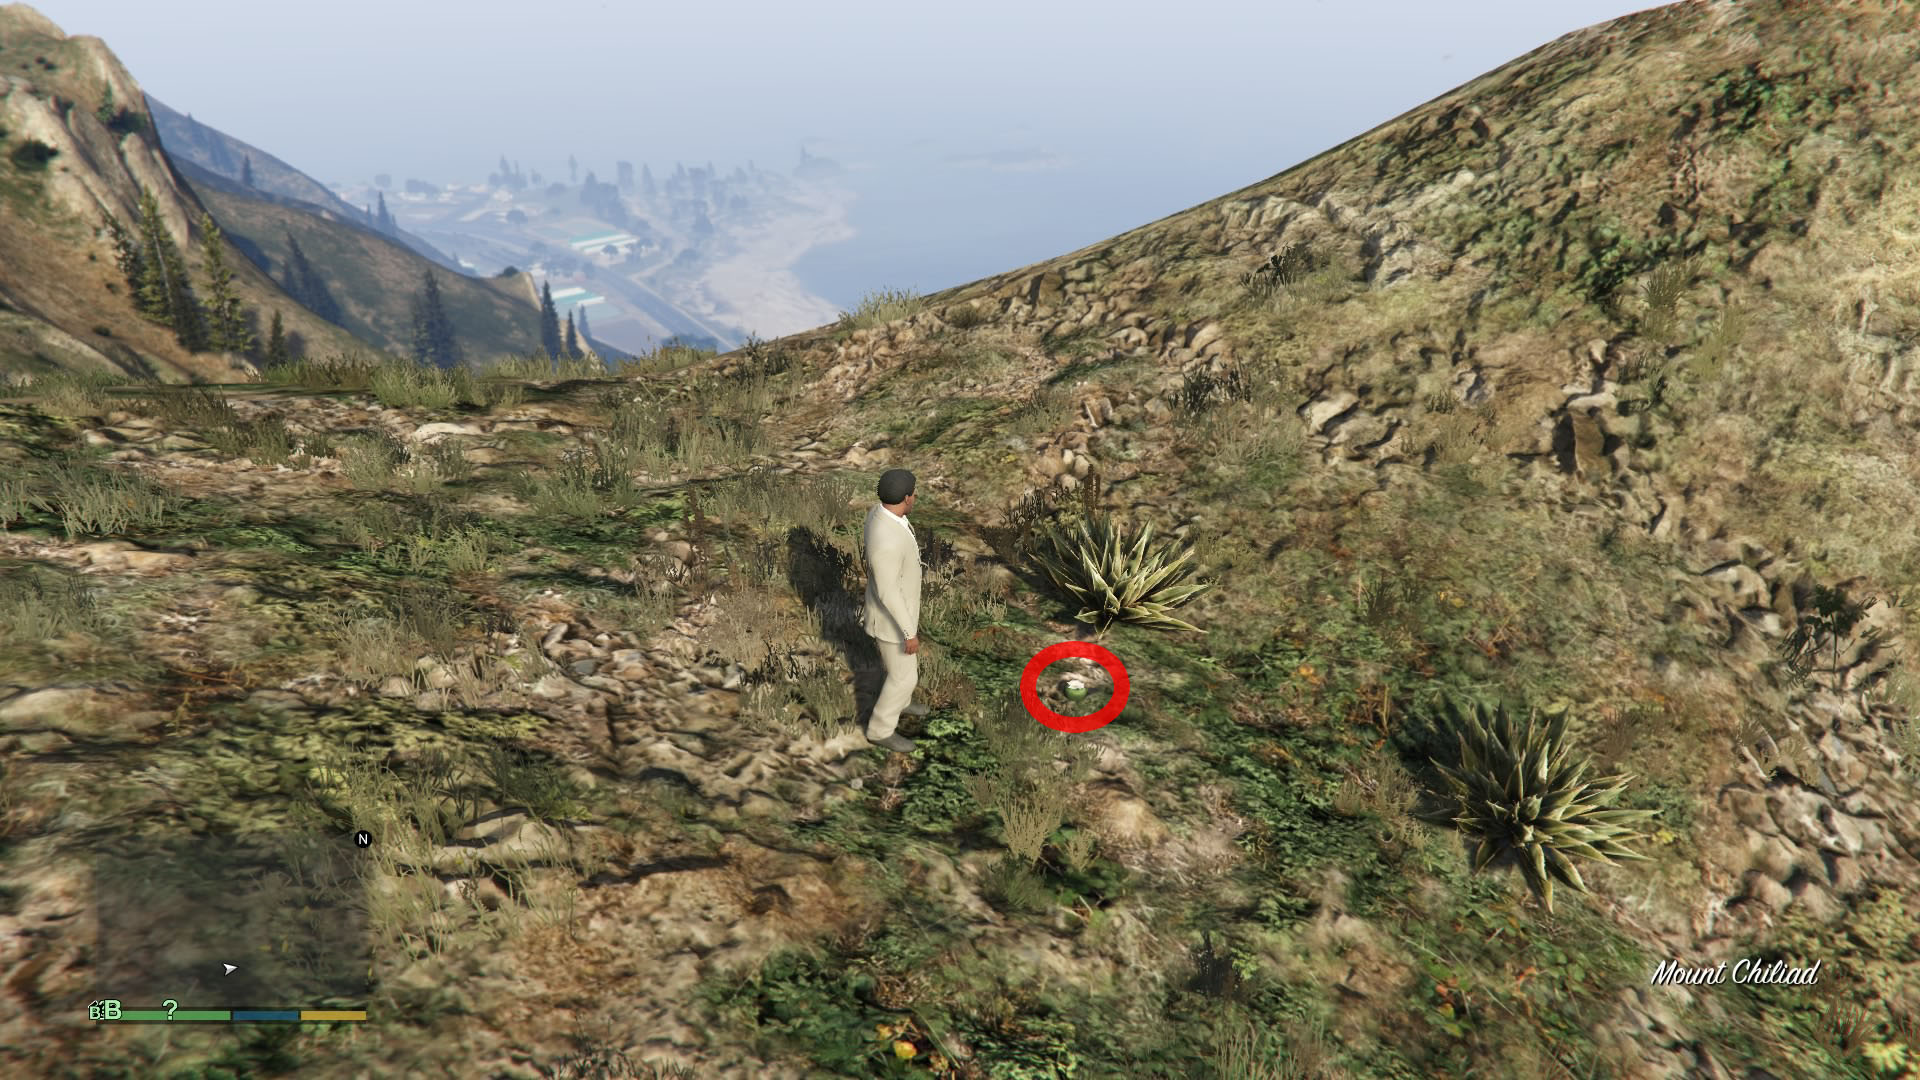 where to find helicopters in gta 5 with Grand Theft Auto V 20141213020254 on Grandtheftauto5cheatscodes furthermore Grand Theft Auto V 20141213020254 likewise Watch further The Rules Of Grand Theft Auto Box Art in addition Watch.